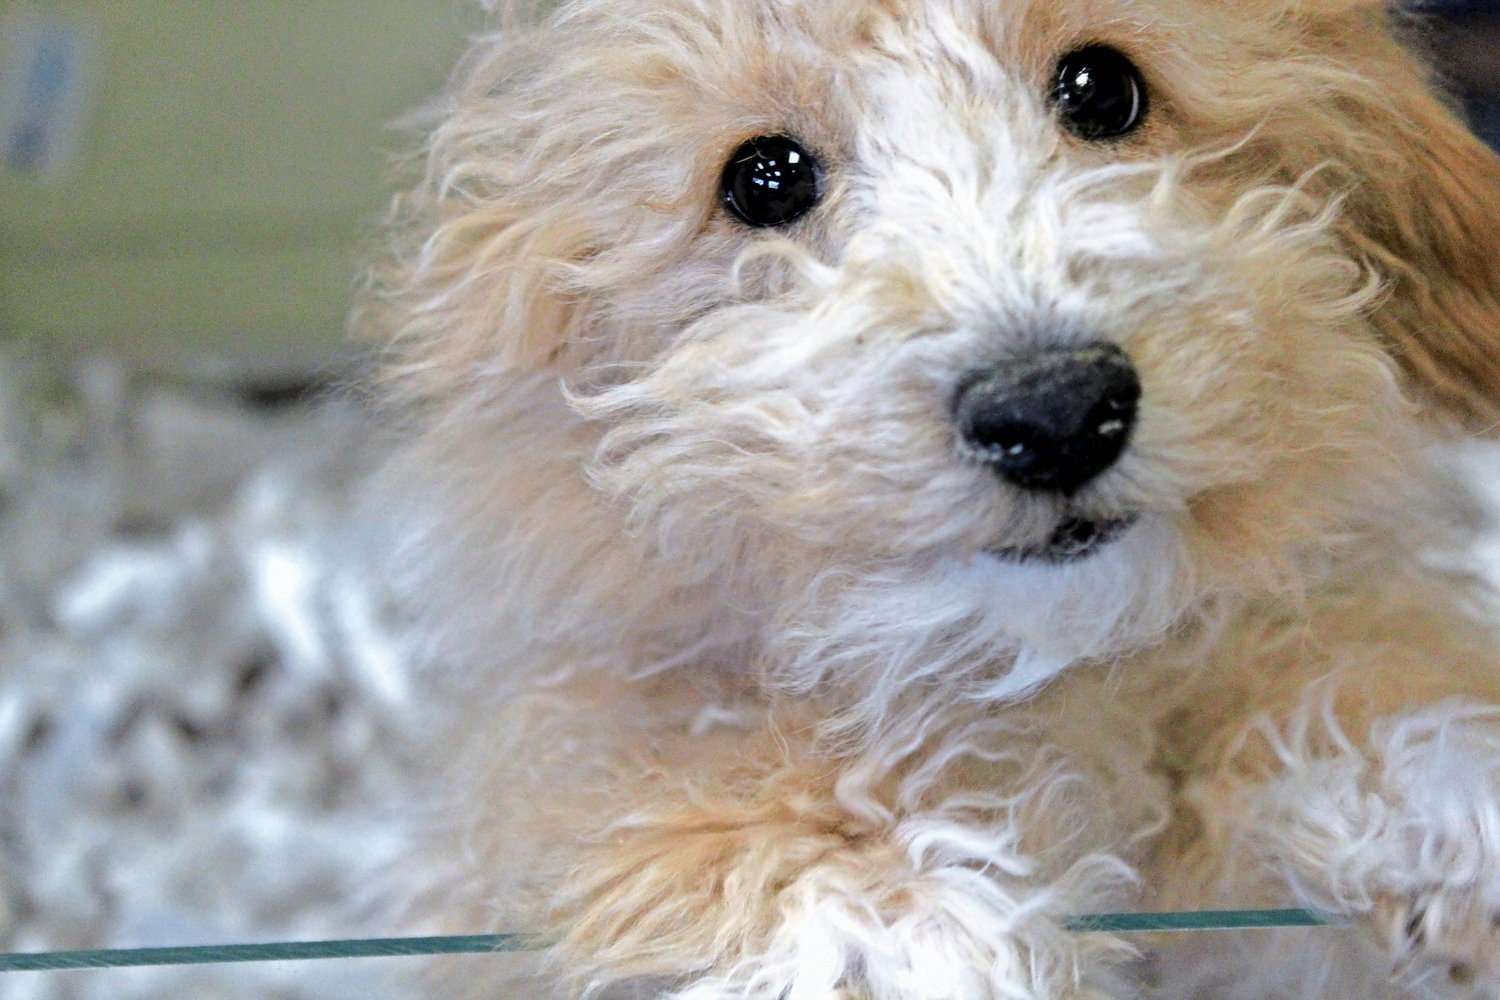 Puppy Love sells puppies from breeders, and not from puppy mills.